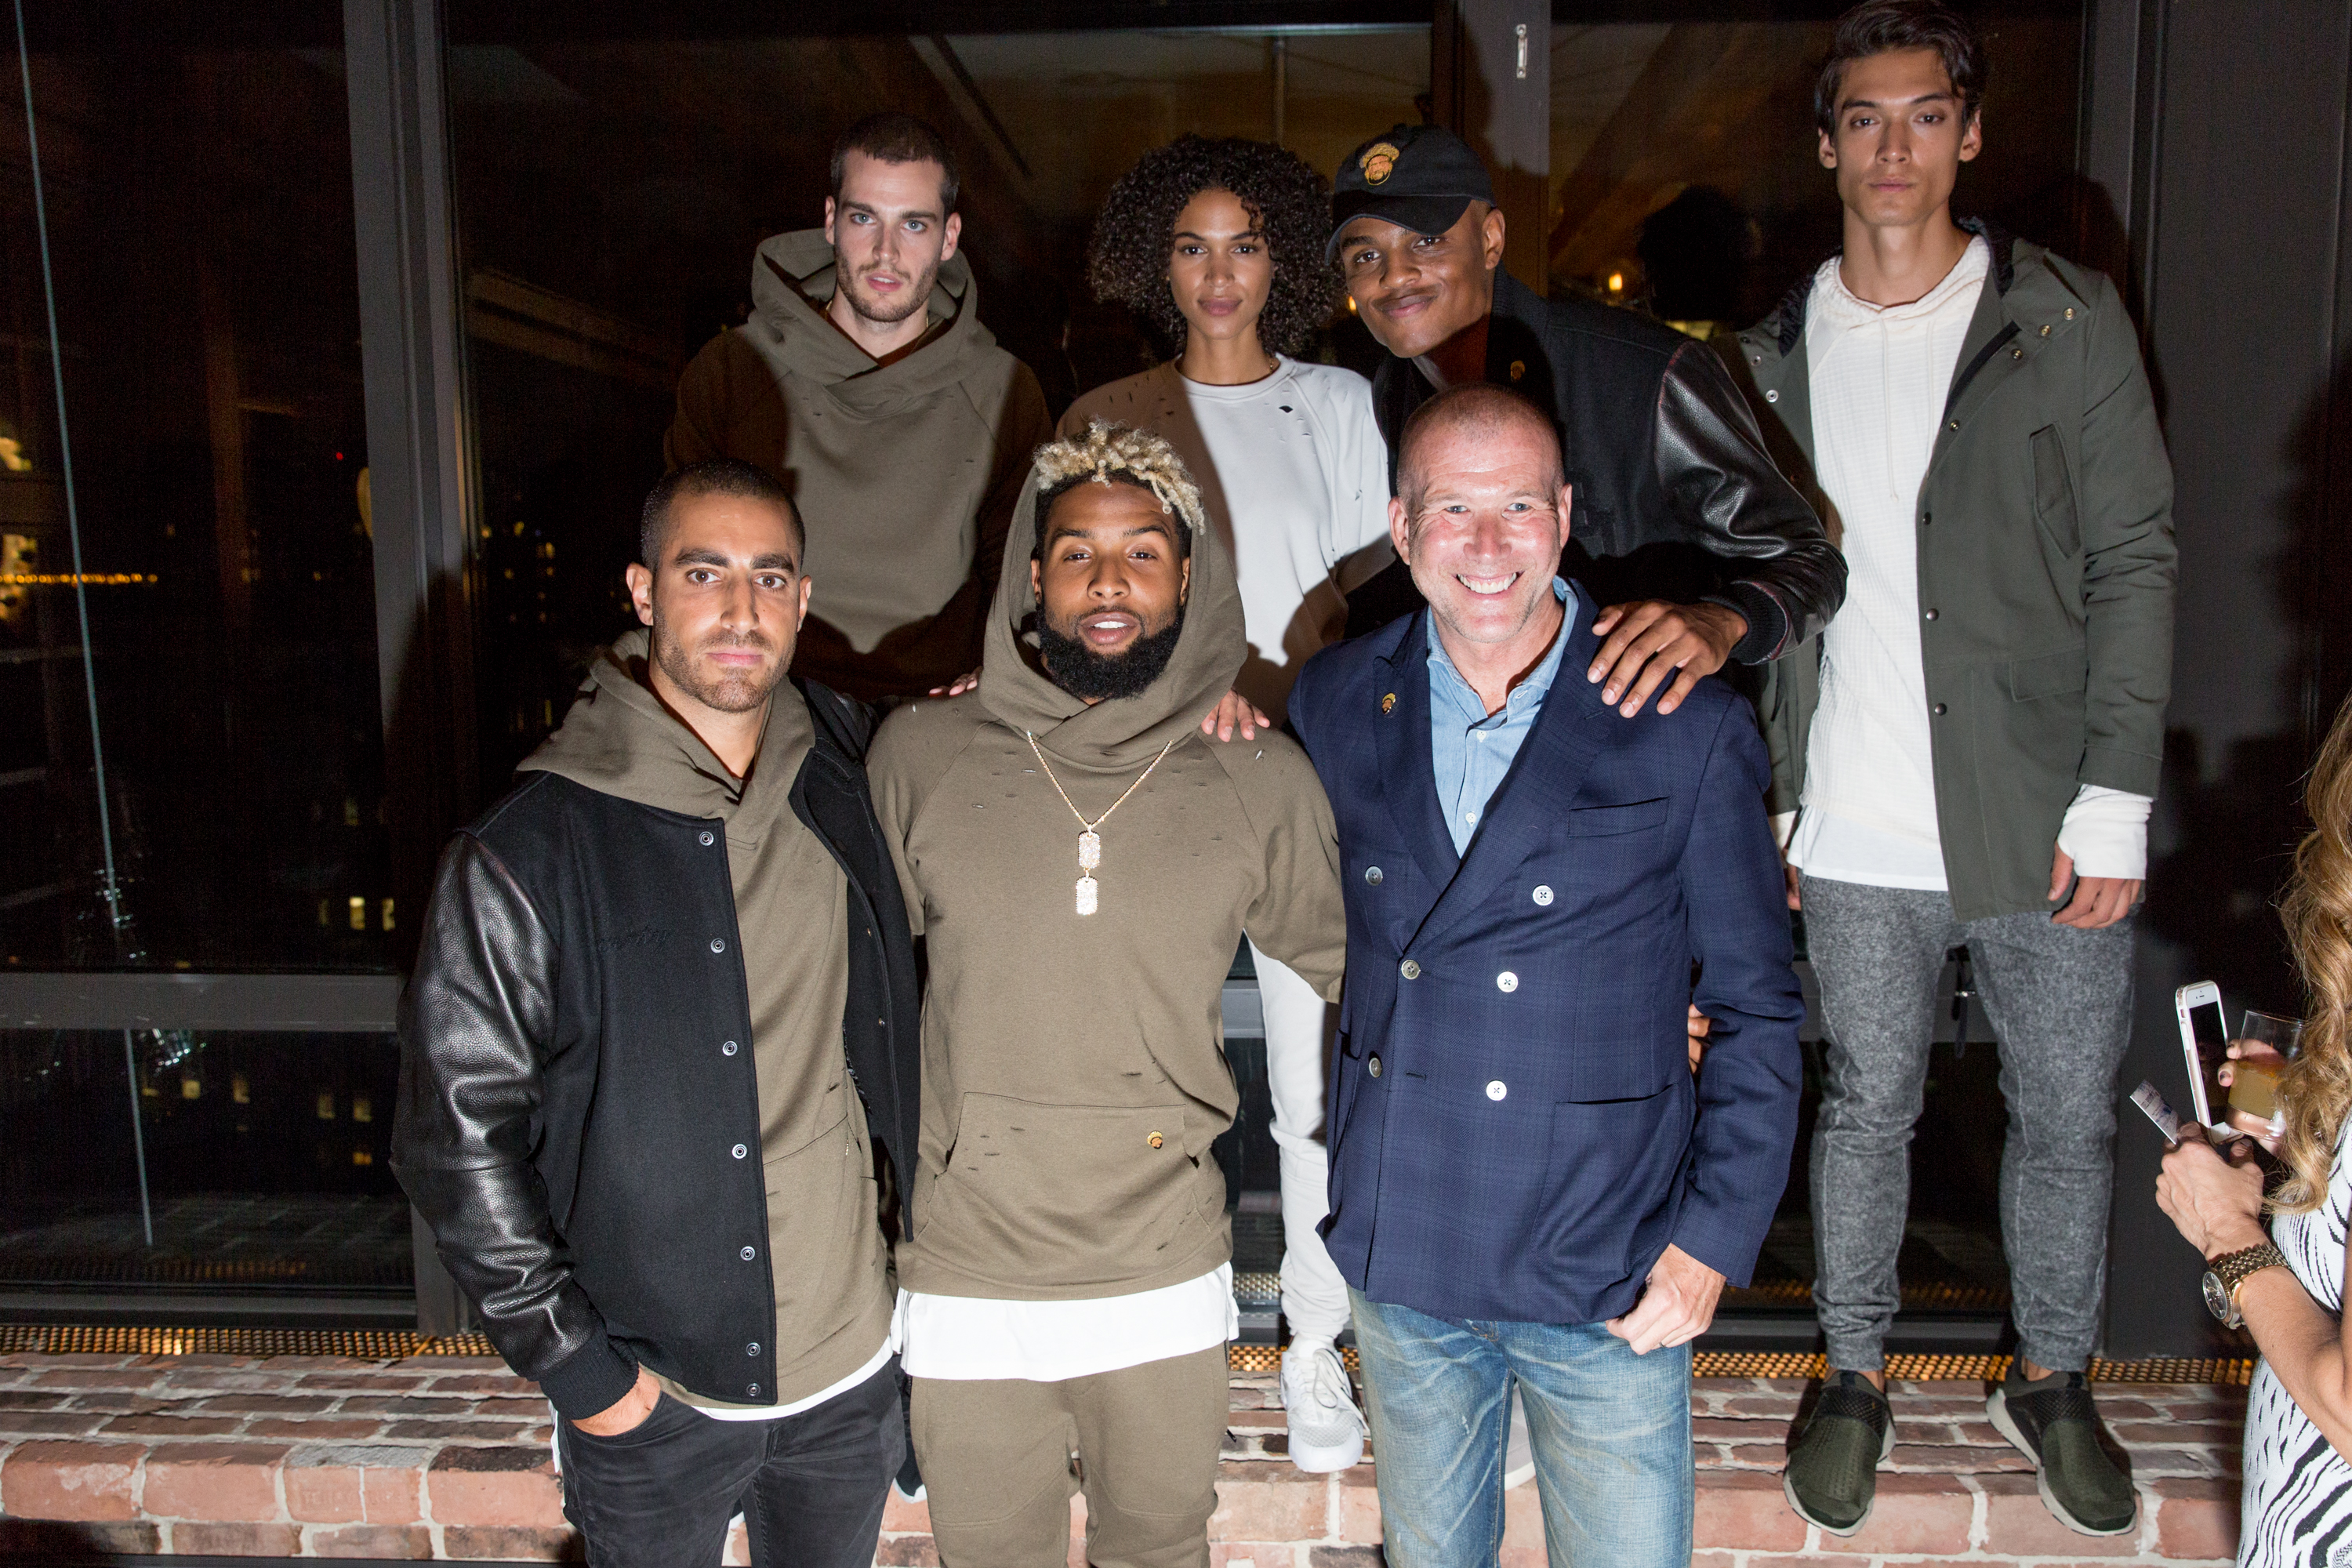 New York Giants Wide Reciever Odell Beckham Jr. and GQ host the launch of 13xTwenty, the Bloomingdales exlclusive collection of knitware created by Odell Beckham Jr. and Twenty Tees at The Gent in New York, NY on September 6th, 2016. Photo Credit: Alex Reside Social Credit: @alexreside